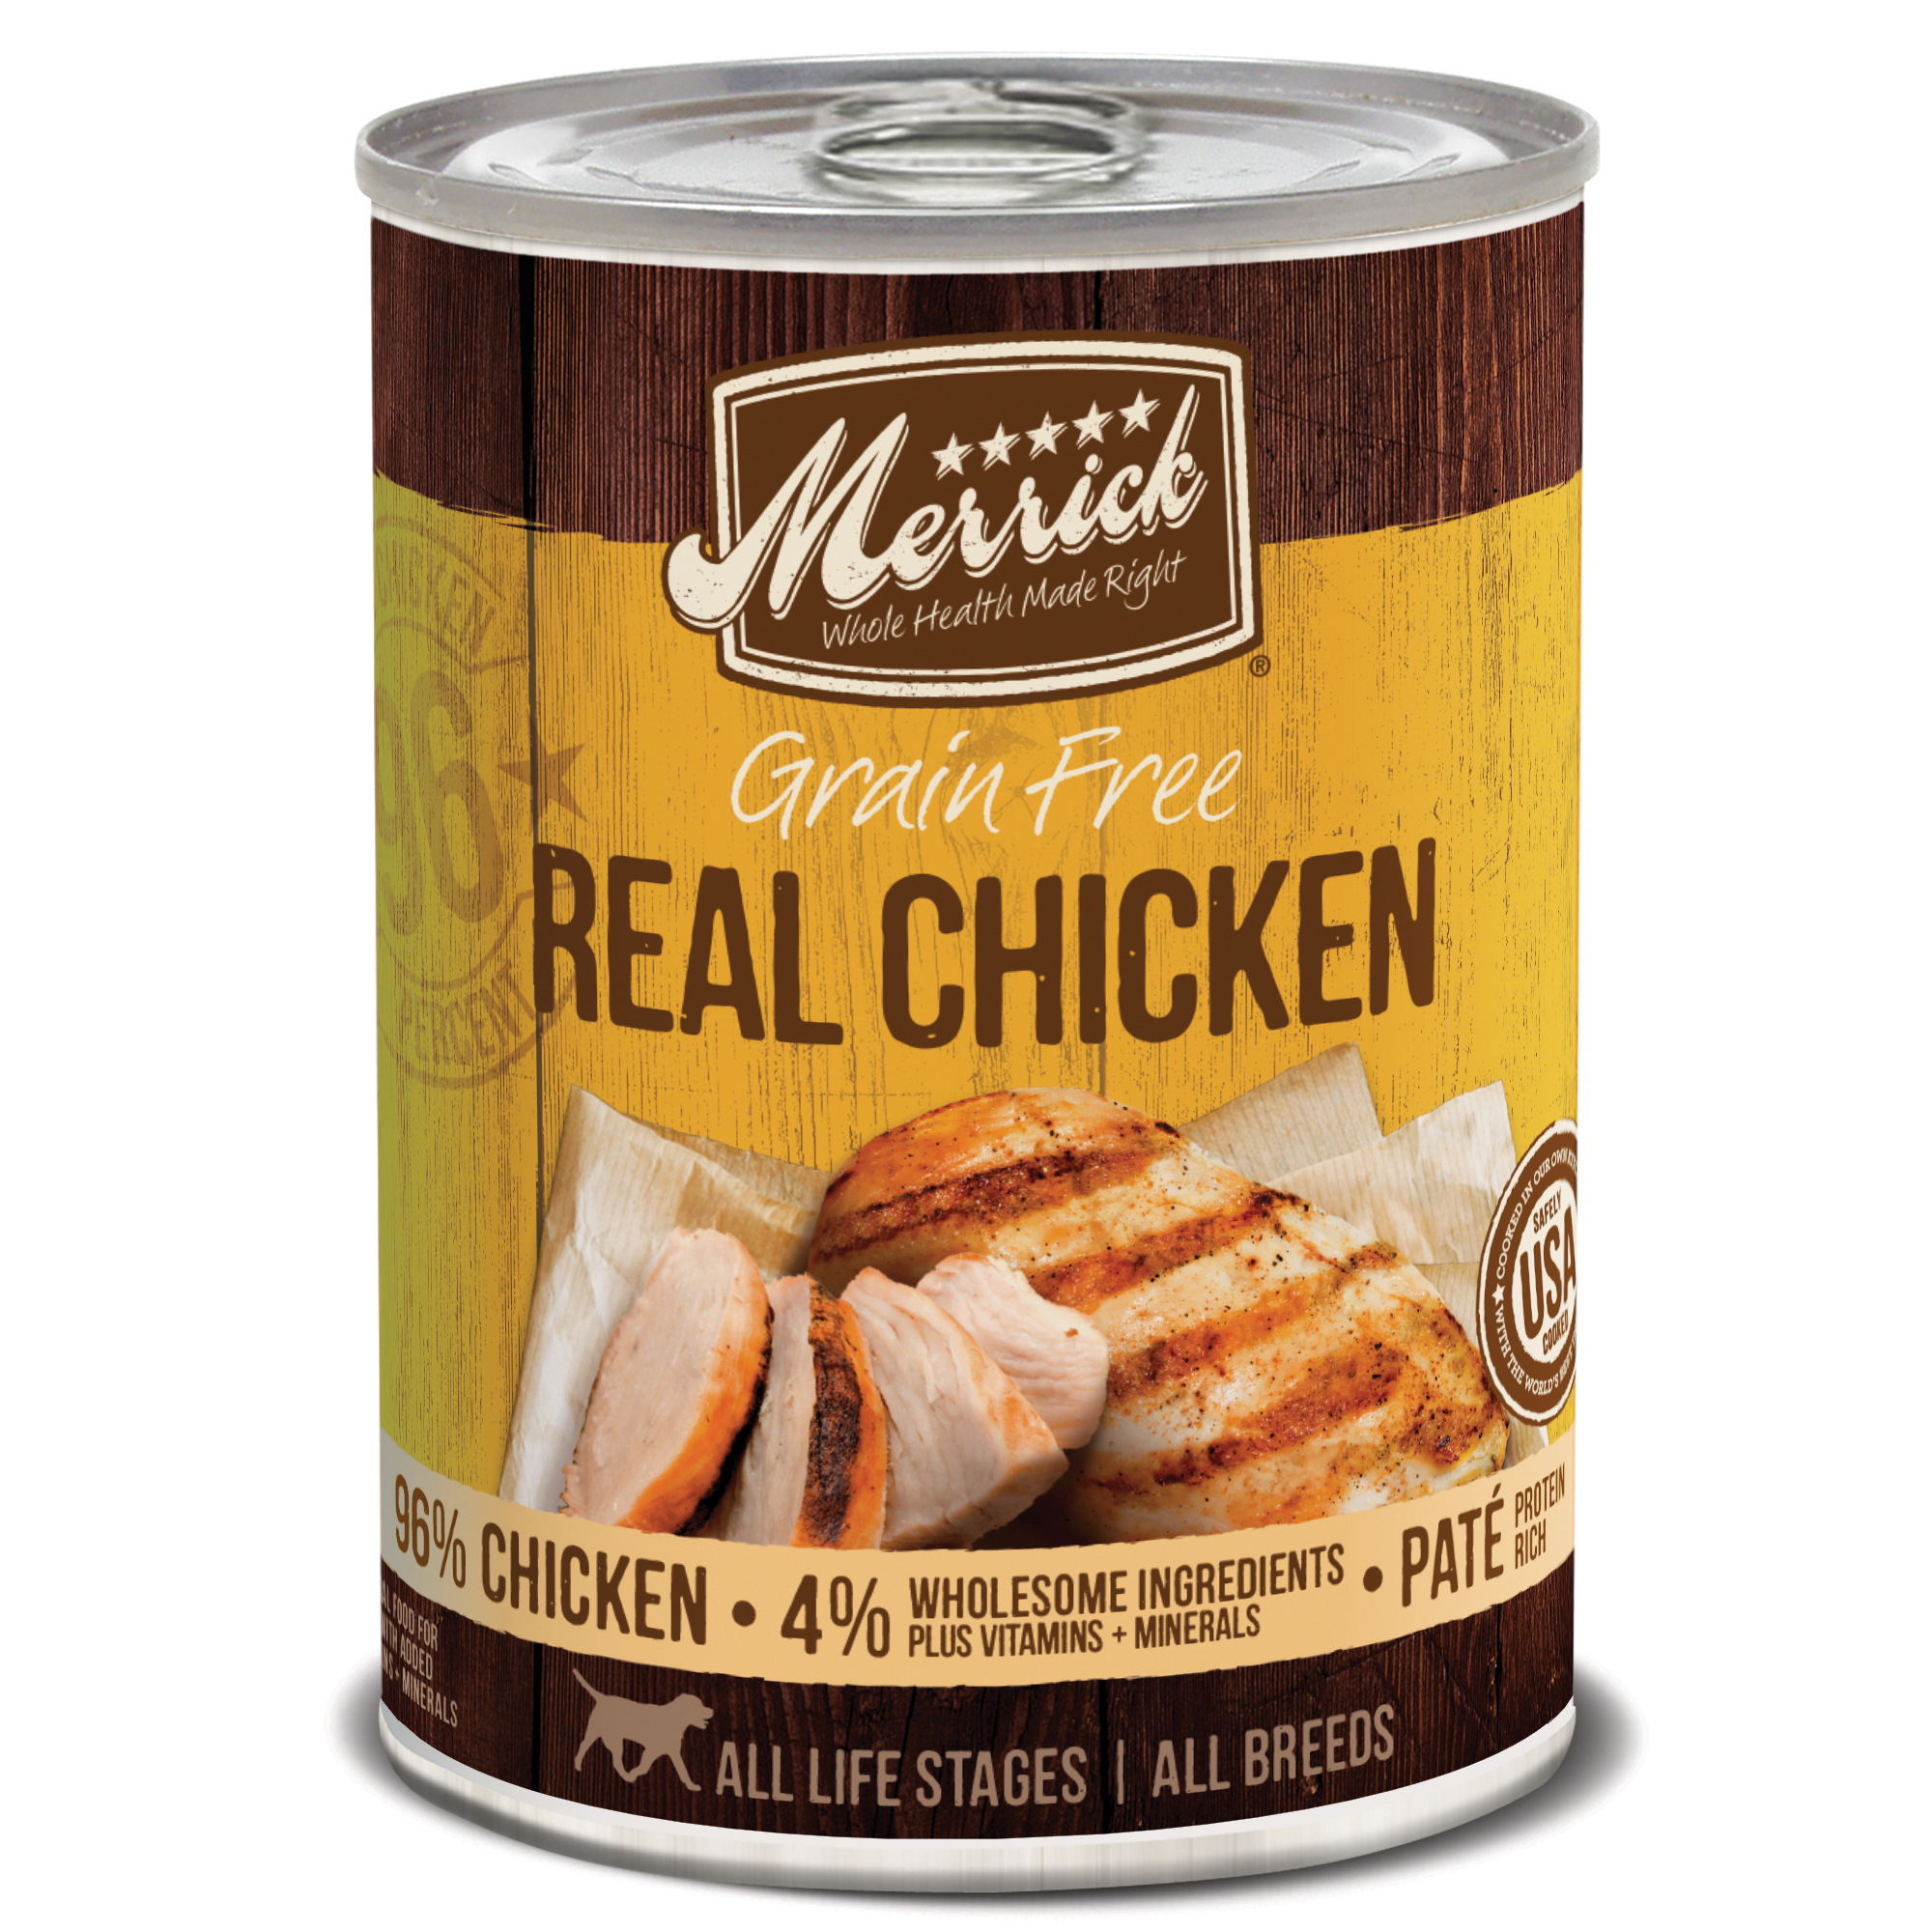 Merrick Grain-Free Real Chicken Canned Dog Food Image